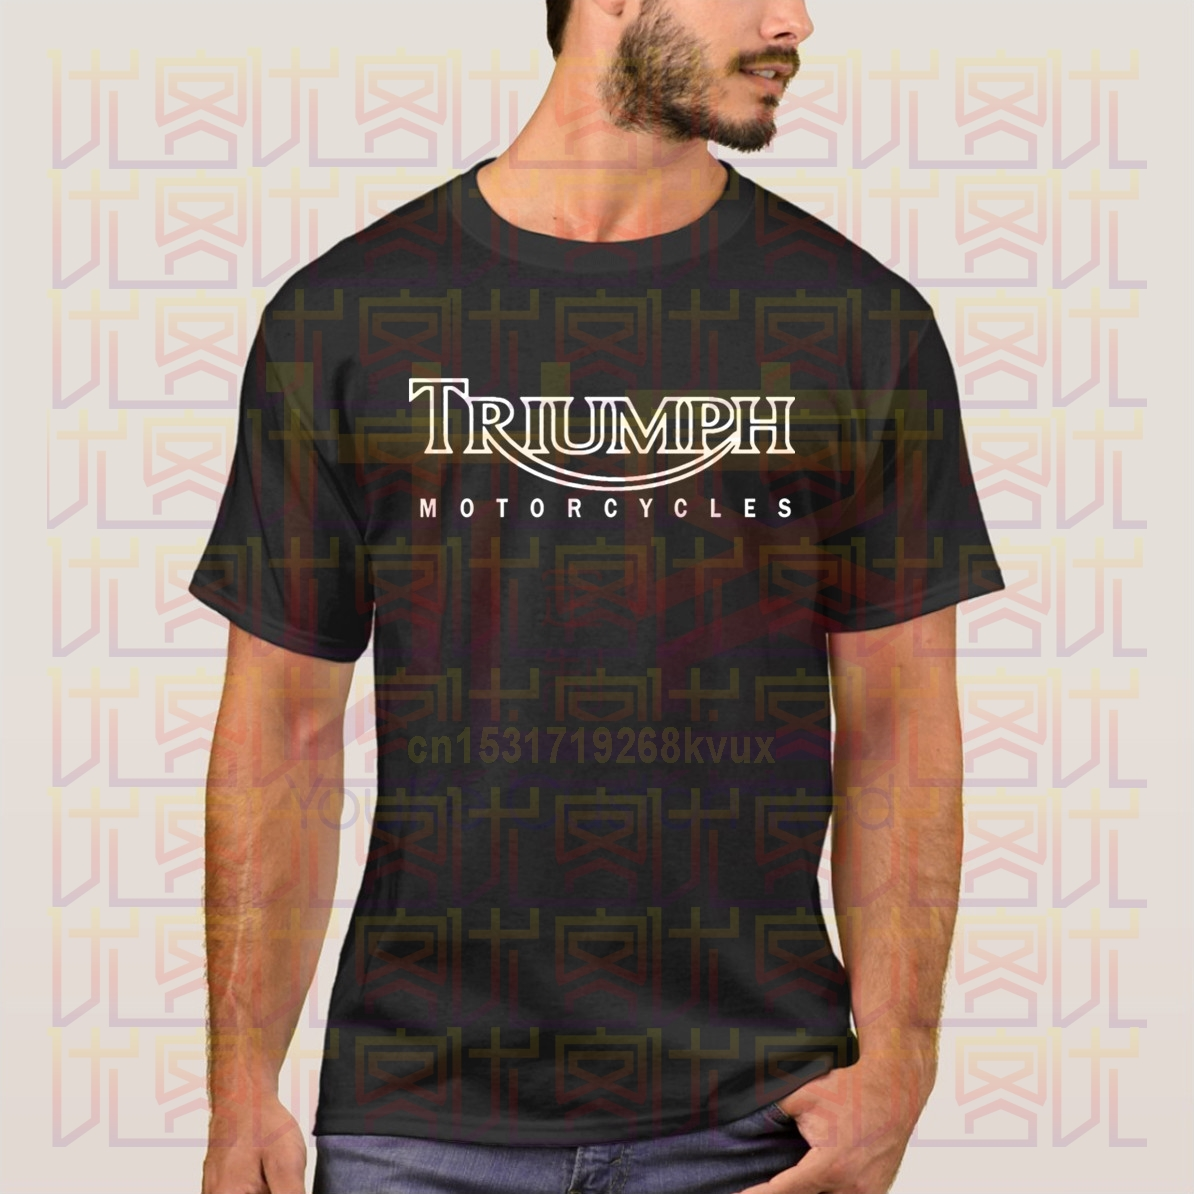 Free Shipping Triumph Motorcycles T-Shirt Blouse Shirt Men's Top Tees New Brand Tshirt Men Summer Style Top Tees